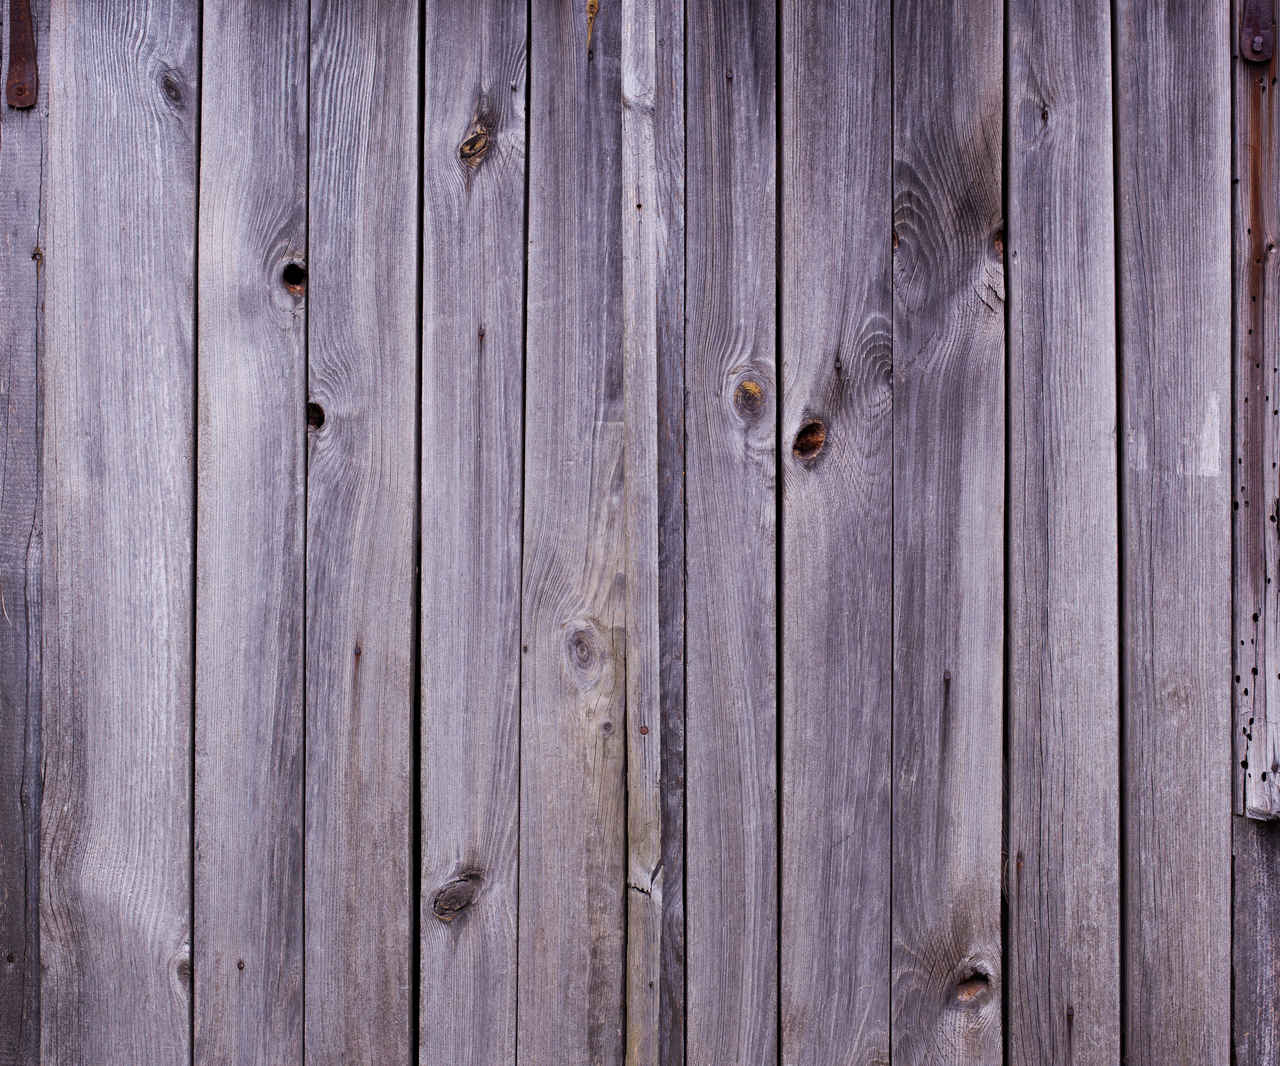 Vintage Wooden Wall Texture